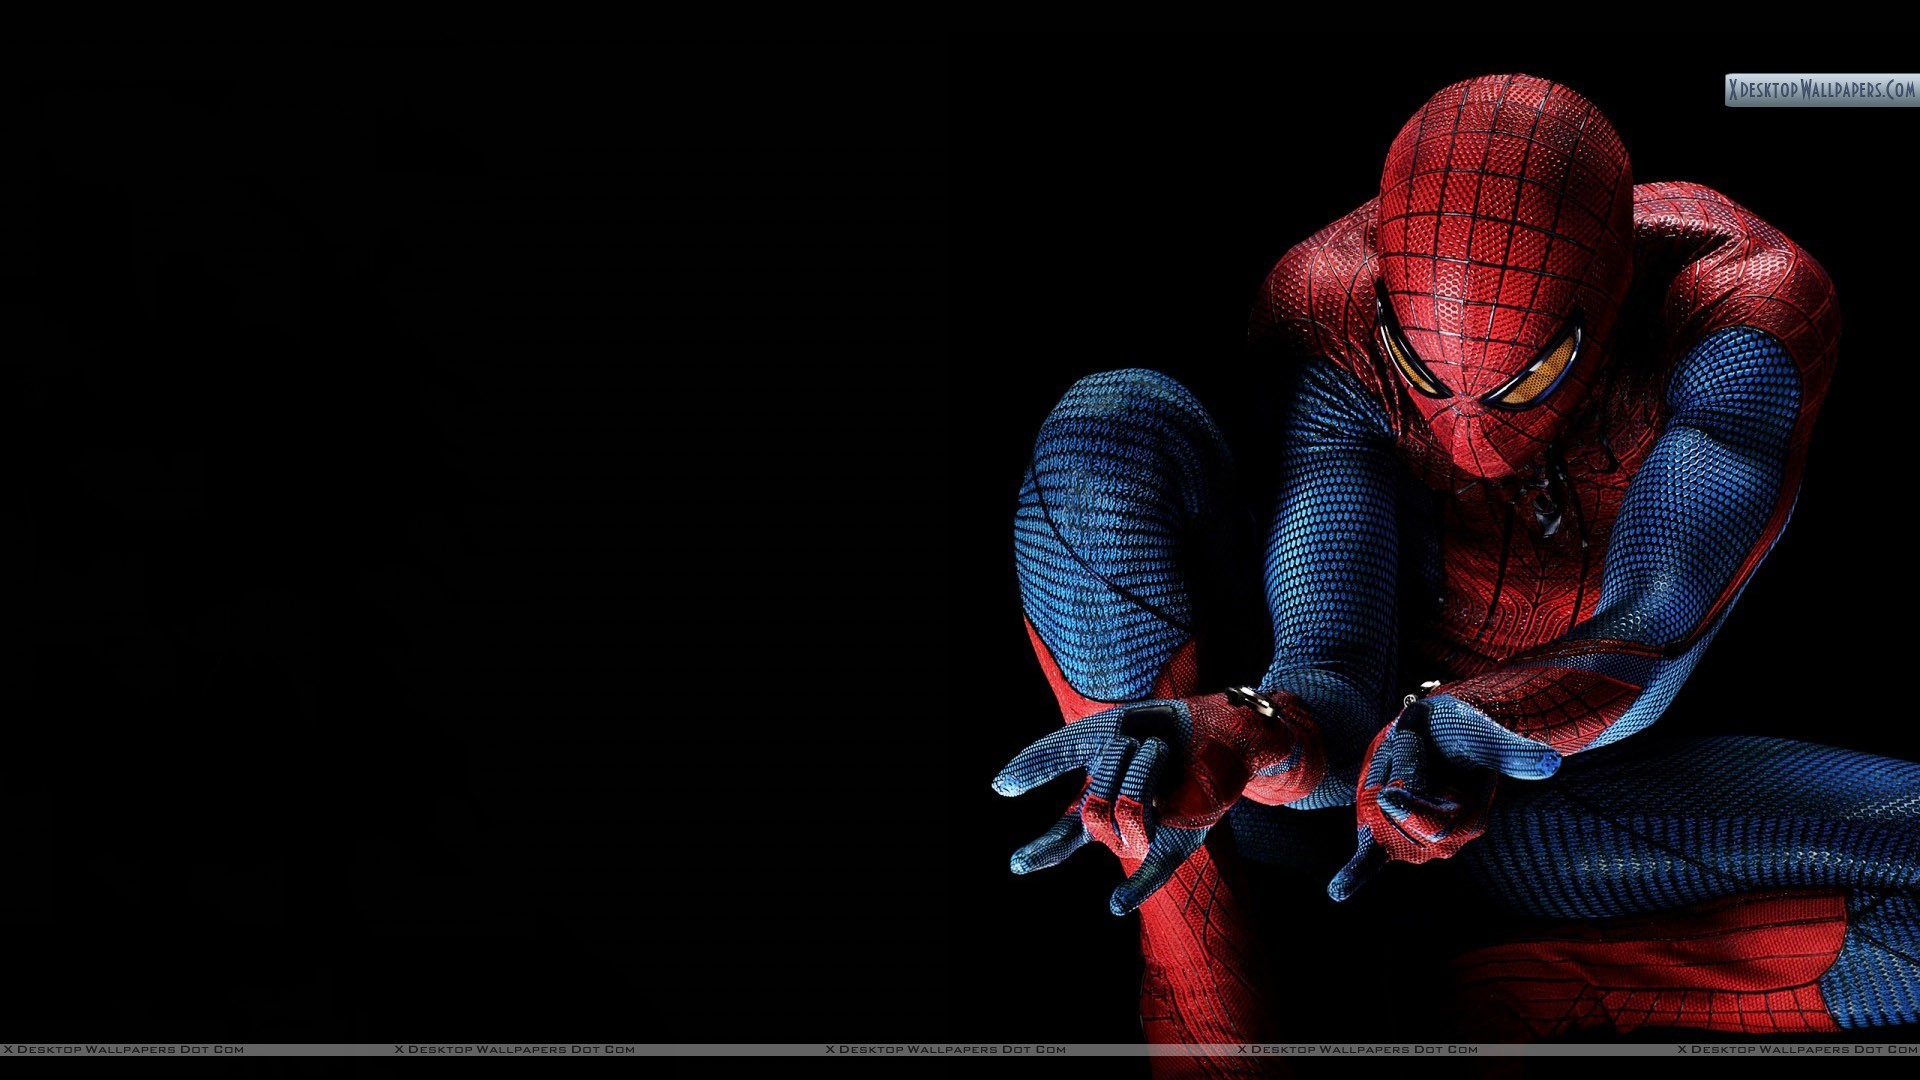 The Superior Spiderman HD Wallpapers Backgrounds Wallpaper 1920×1200  Spiderman Pics | Adorable Wallpapers | Wallpapers | Pinterest | Spiderman  pics, Man …